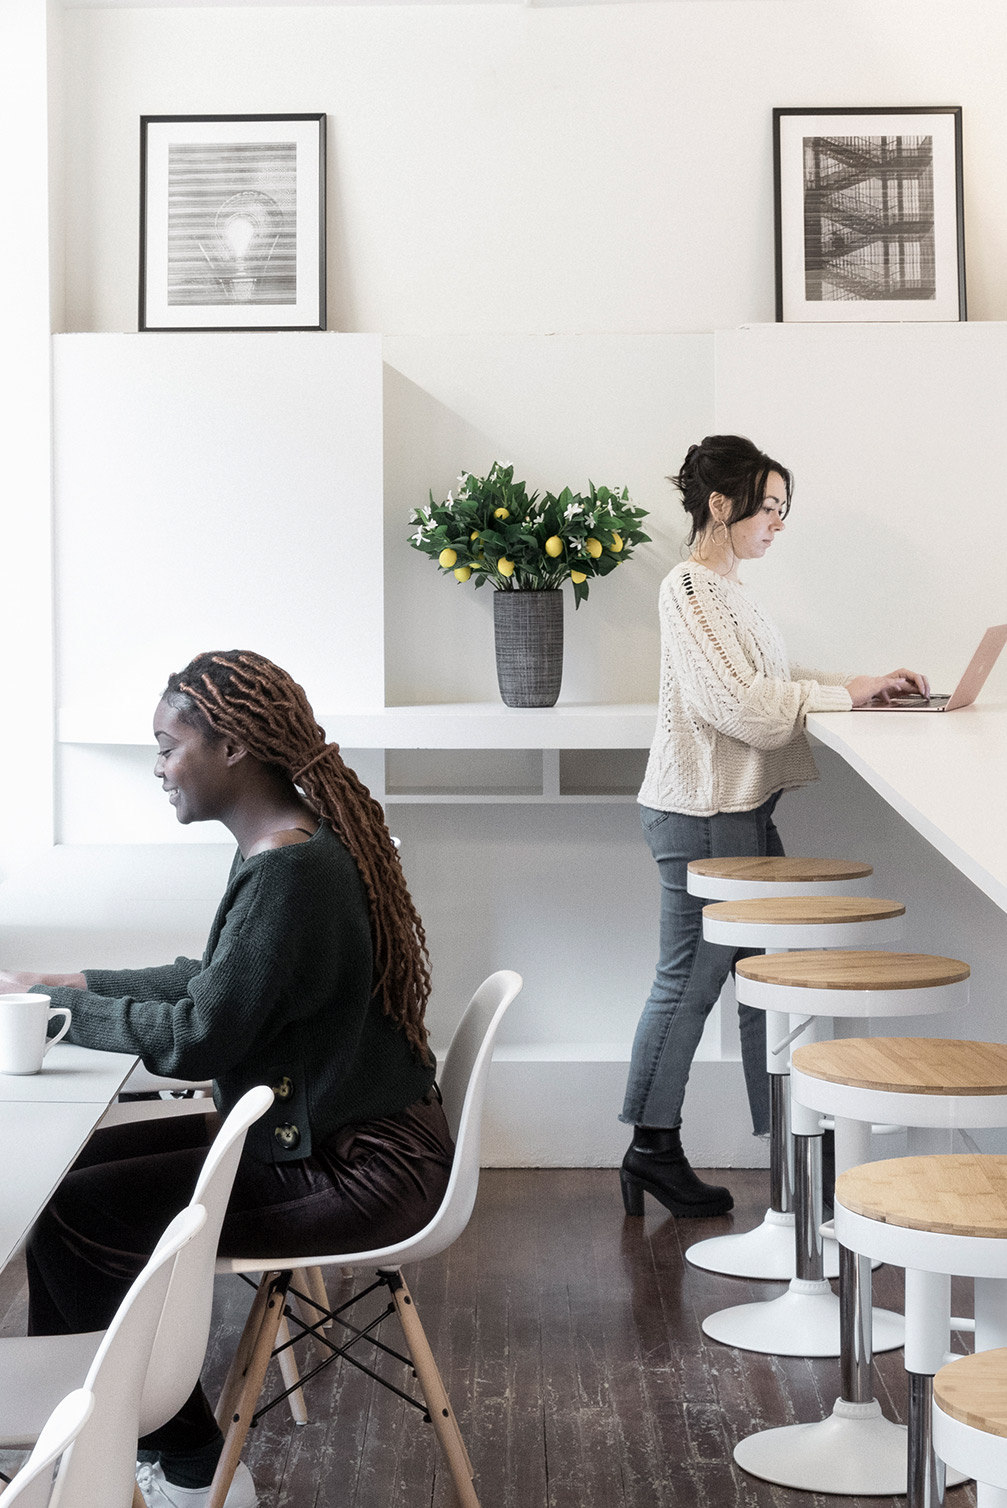 Two women talking in a Spacious space